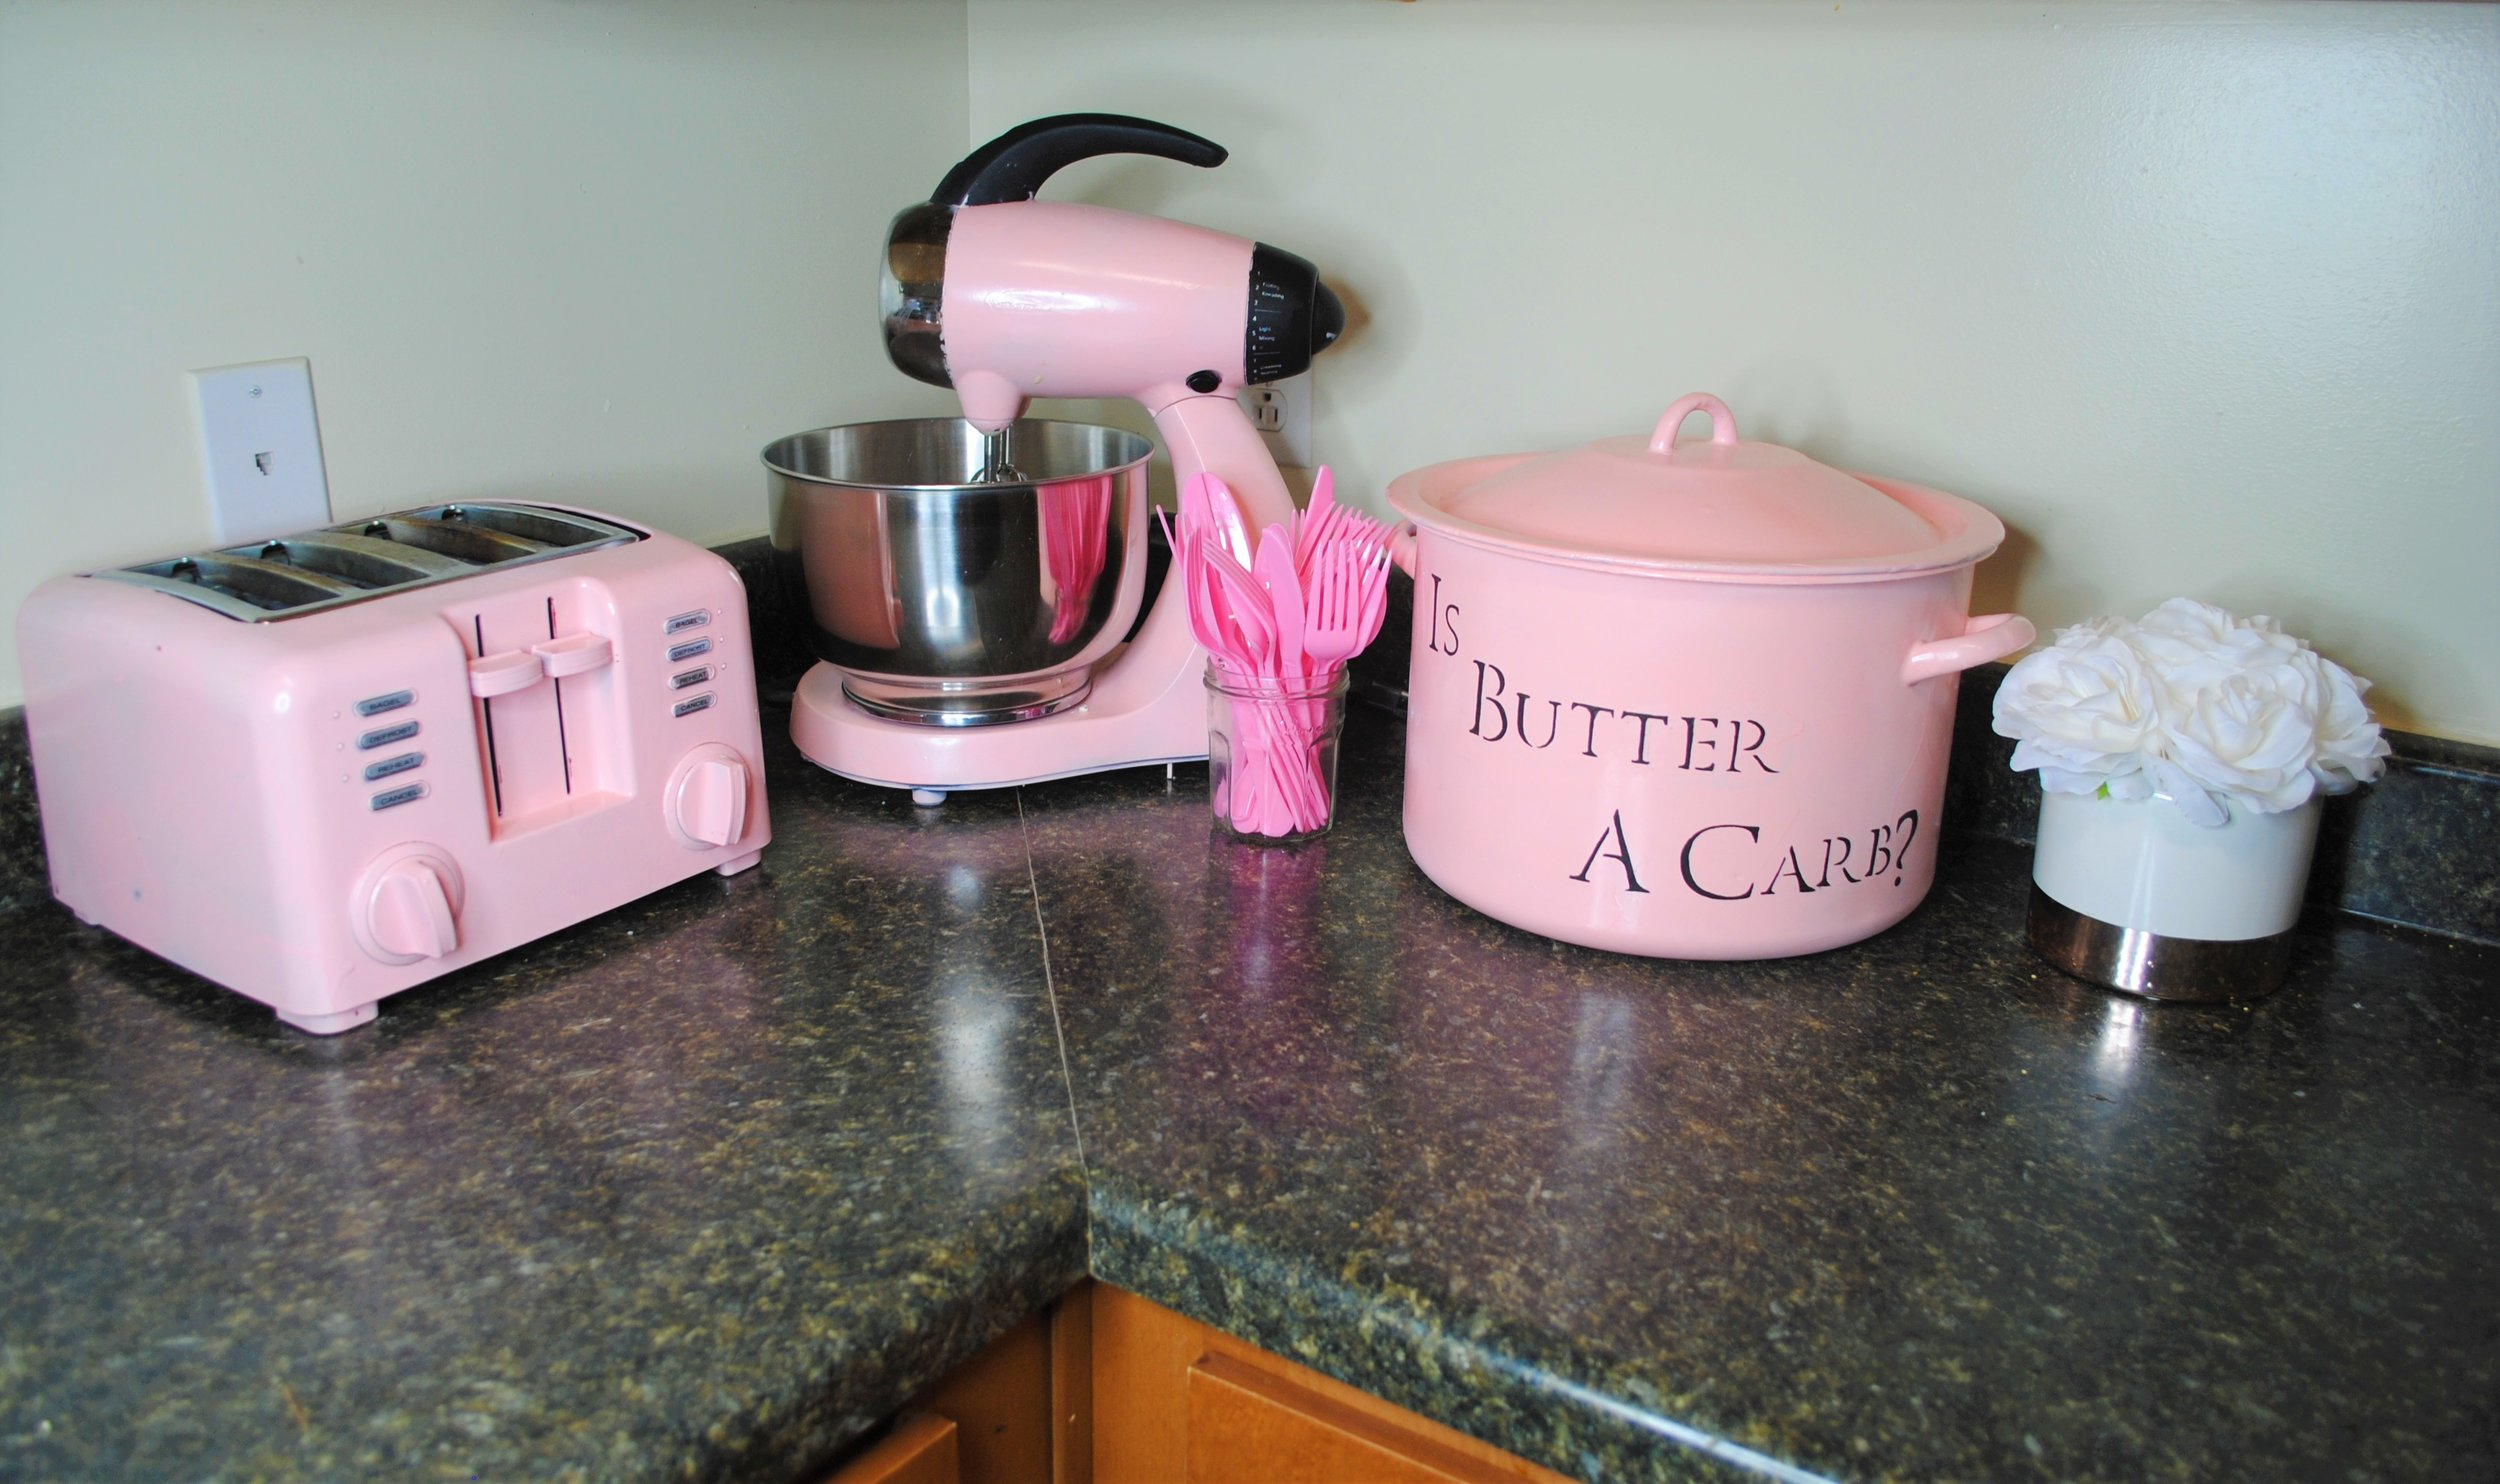 CUTE RIGHT?! I think this light pink color is girly without being too over-the-top, and I just haaaad to jazz up the bread bin with a Mean Girls quote. More on that below!